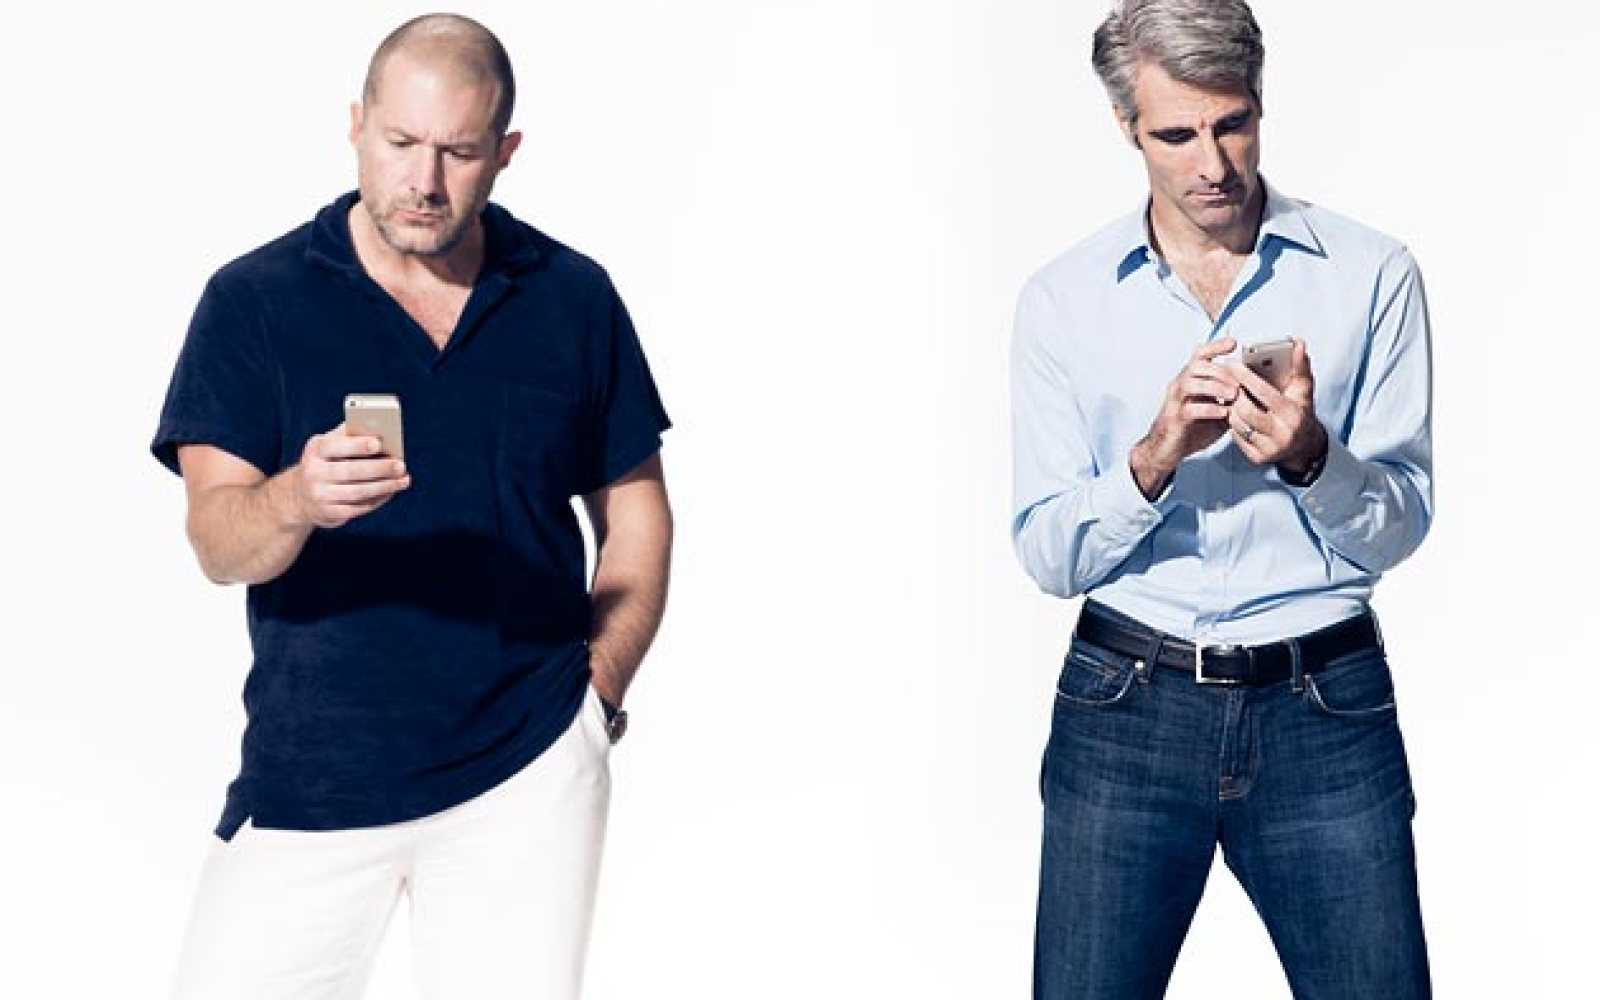 Full Businessweek interview with Jony Ive and Craig Federighi